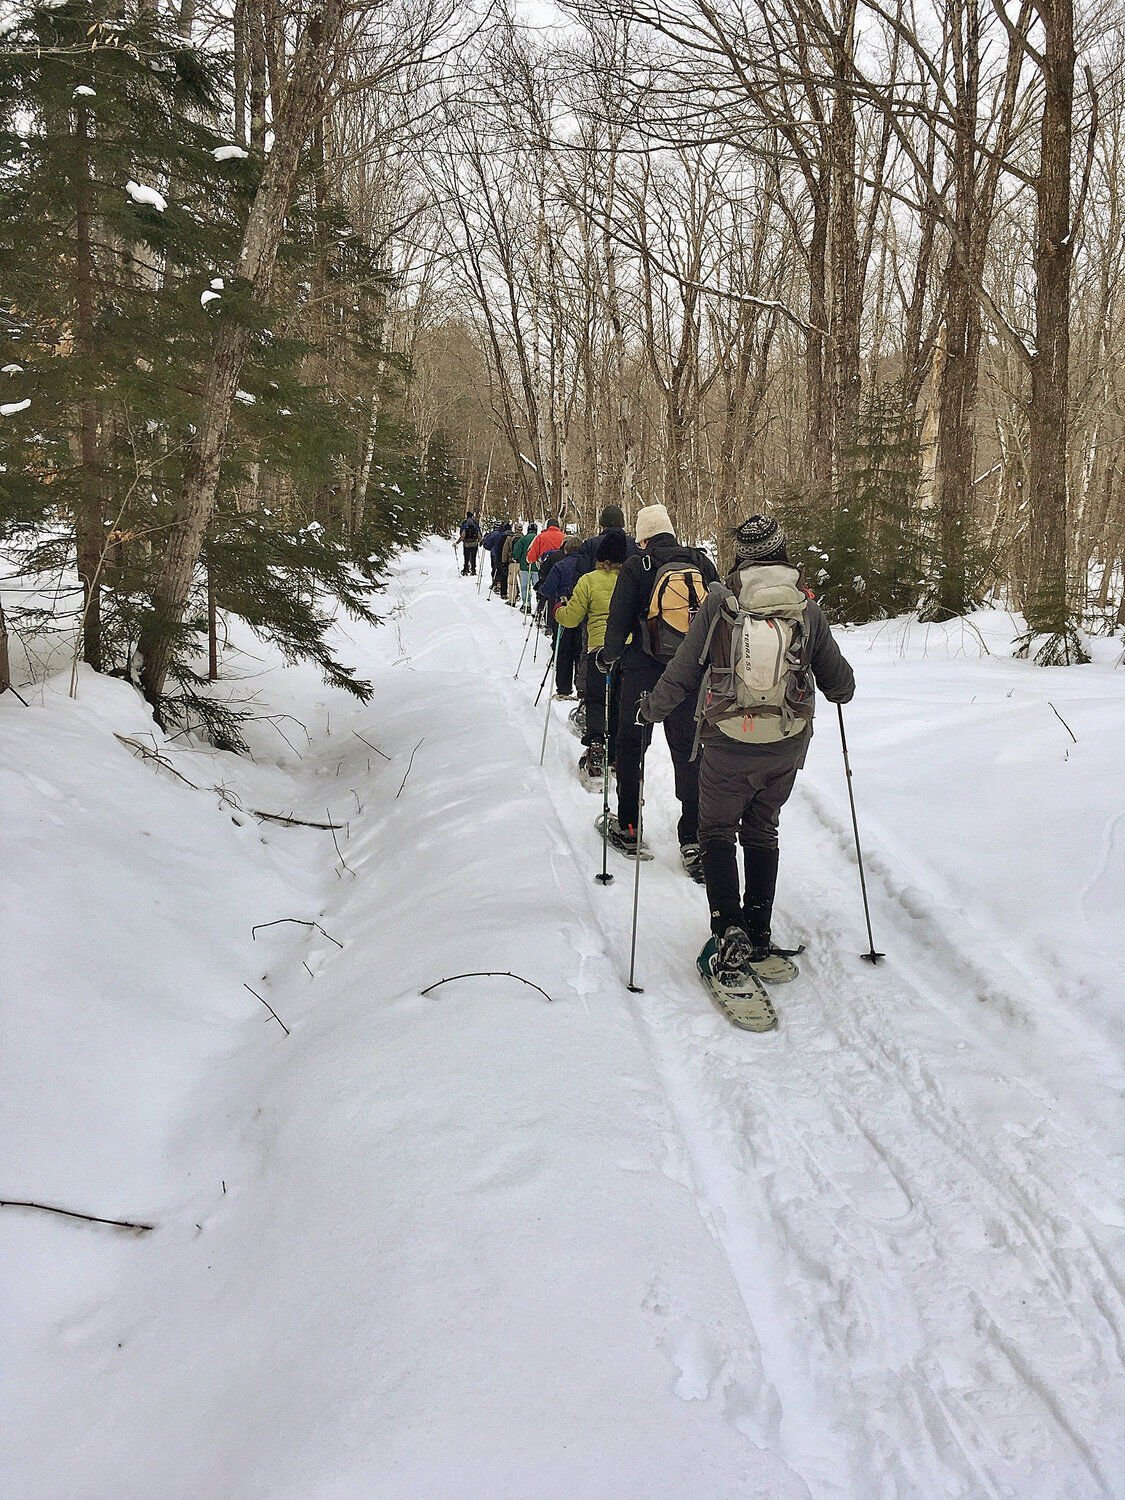 3,500 acres on Glebe Mountain to be conserved